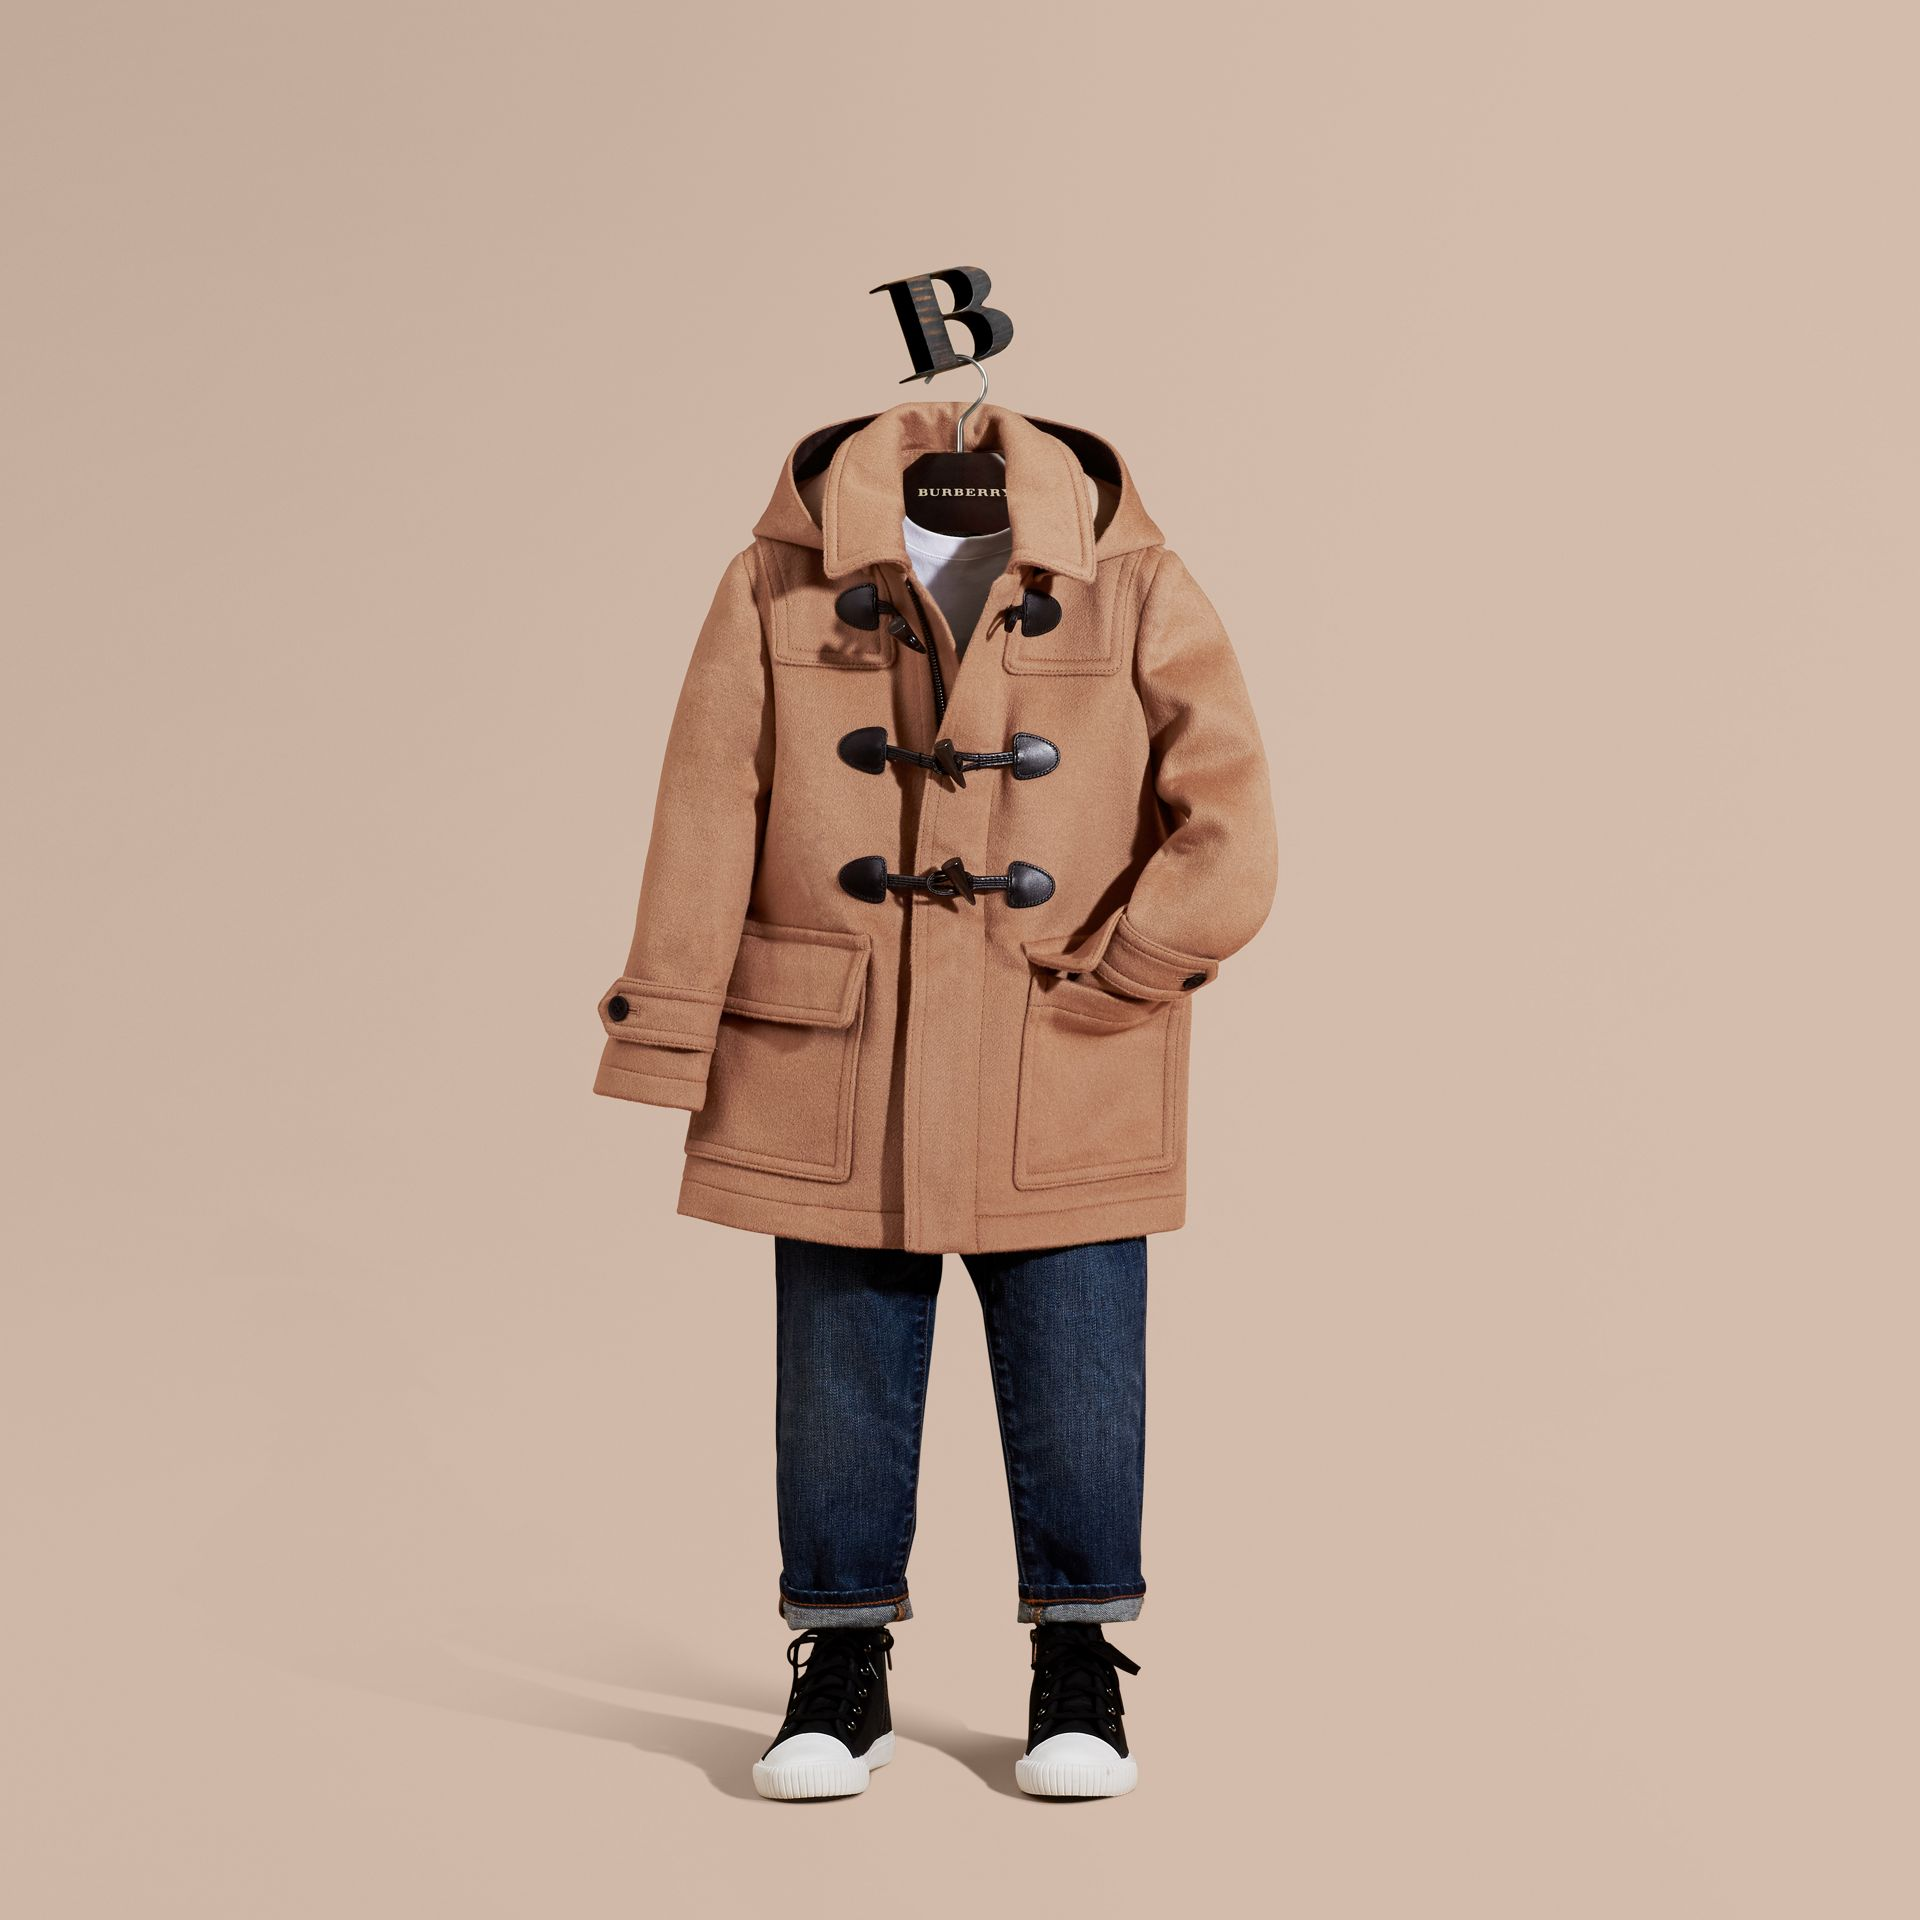 New camel Wool Duffle Coat with Check-lined Hood New Camel - gallery image 1